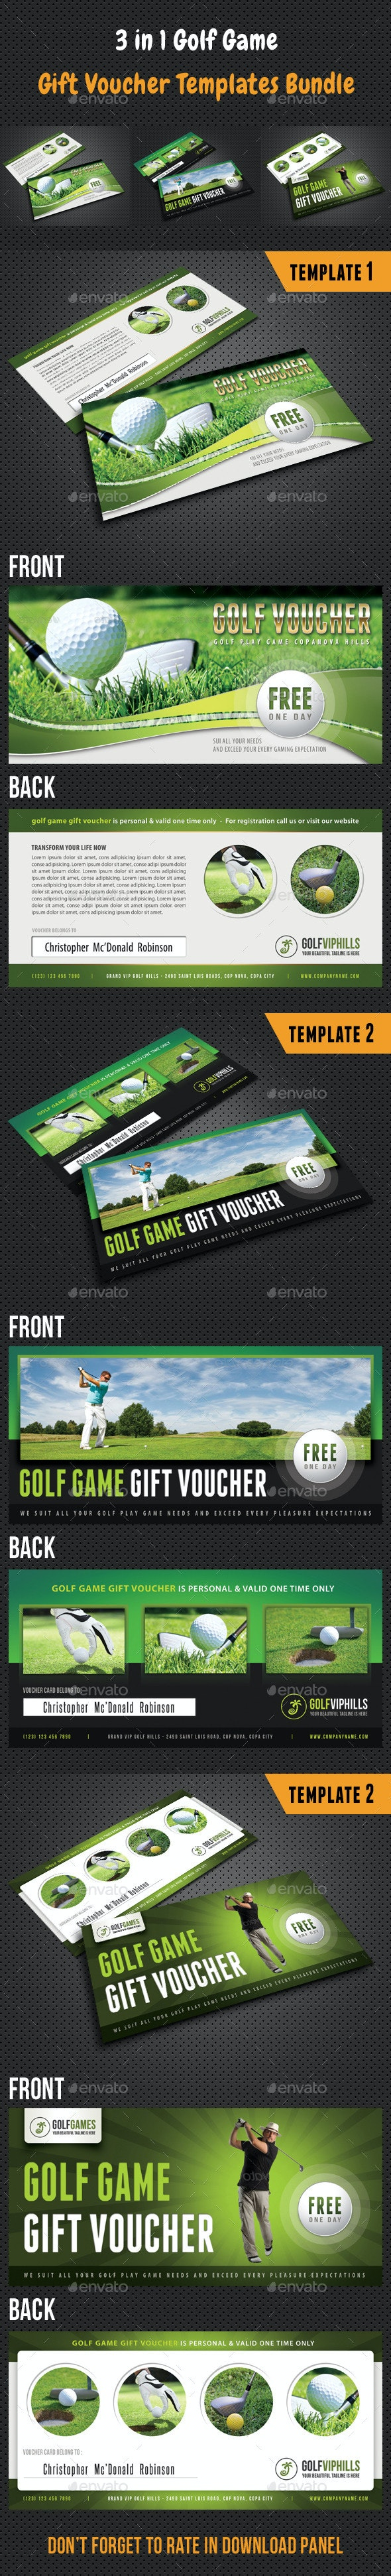 3 in 1 Golf Game Gift Voucher Bundle - Cards & Invites Print Templates